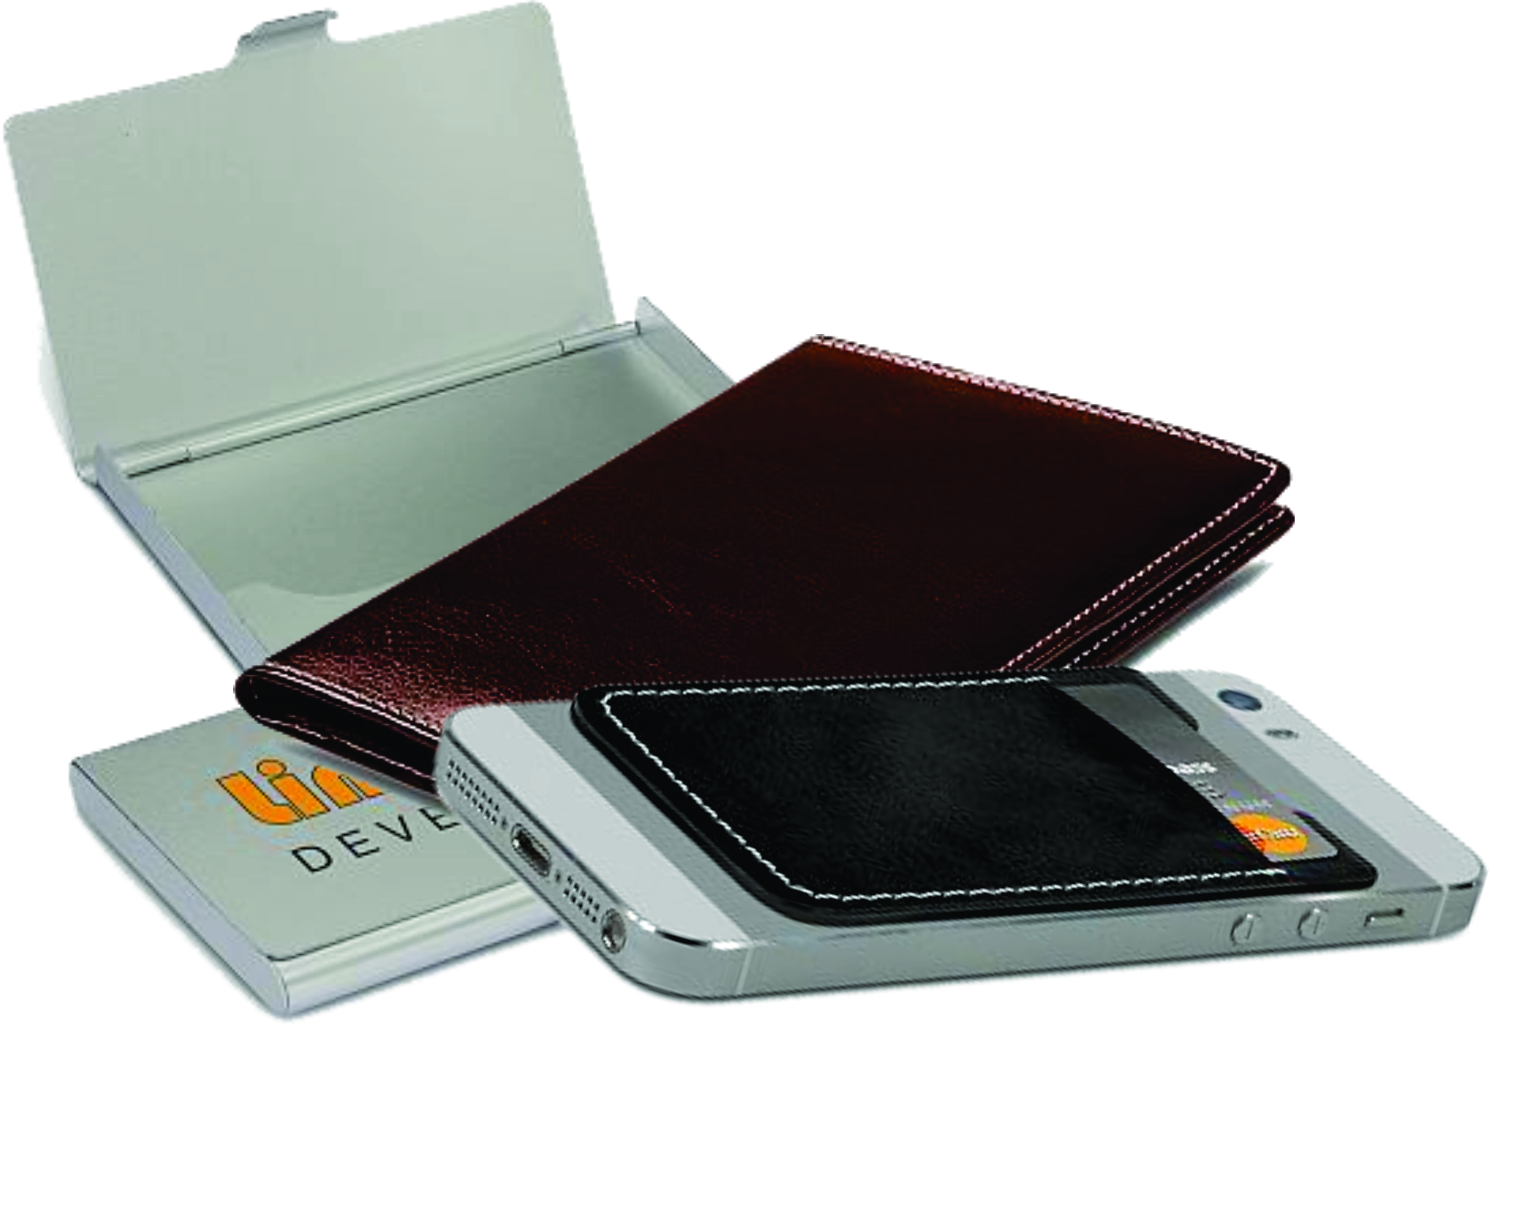 Card Holders and Wallets